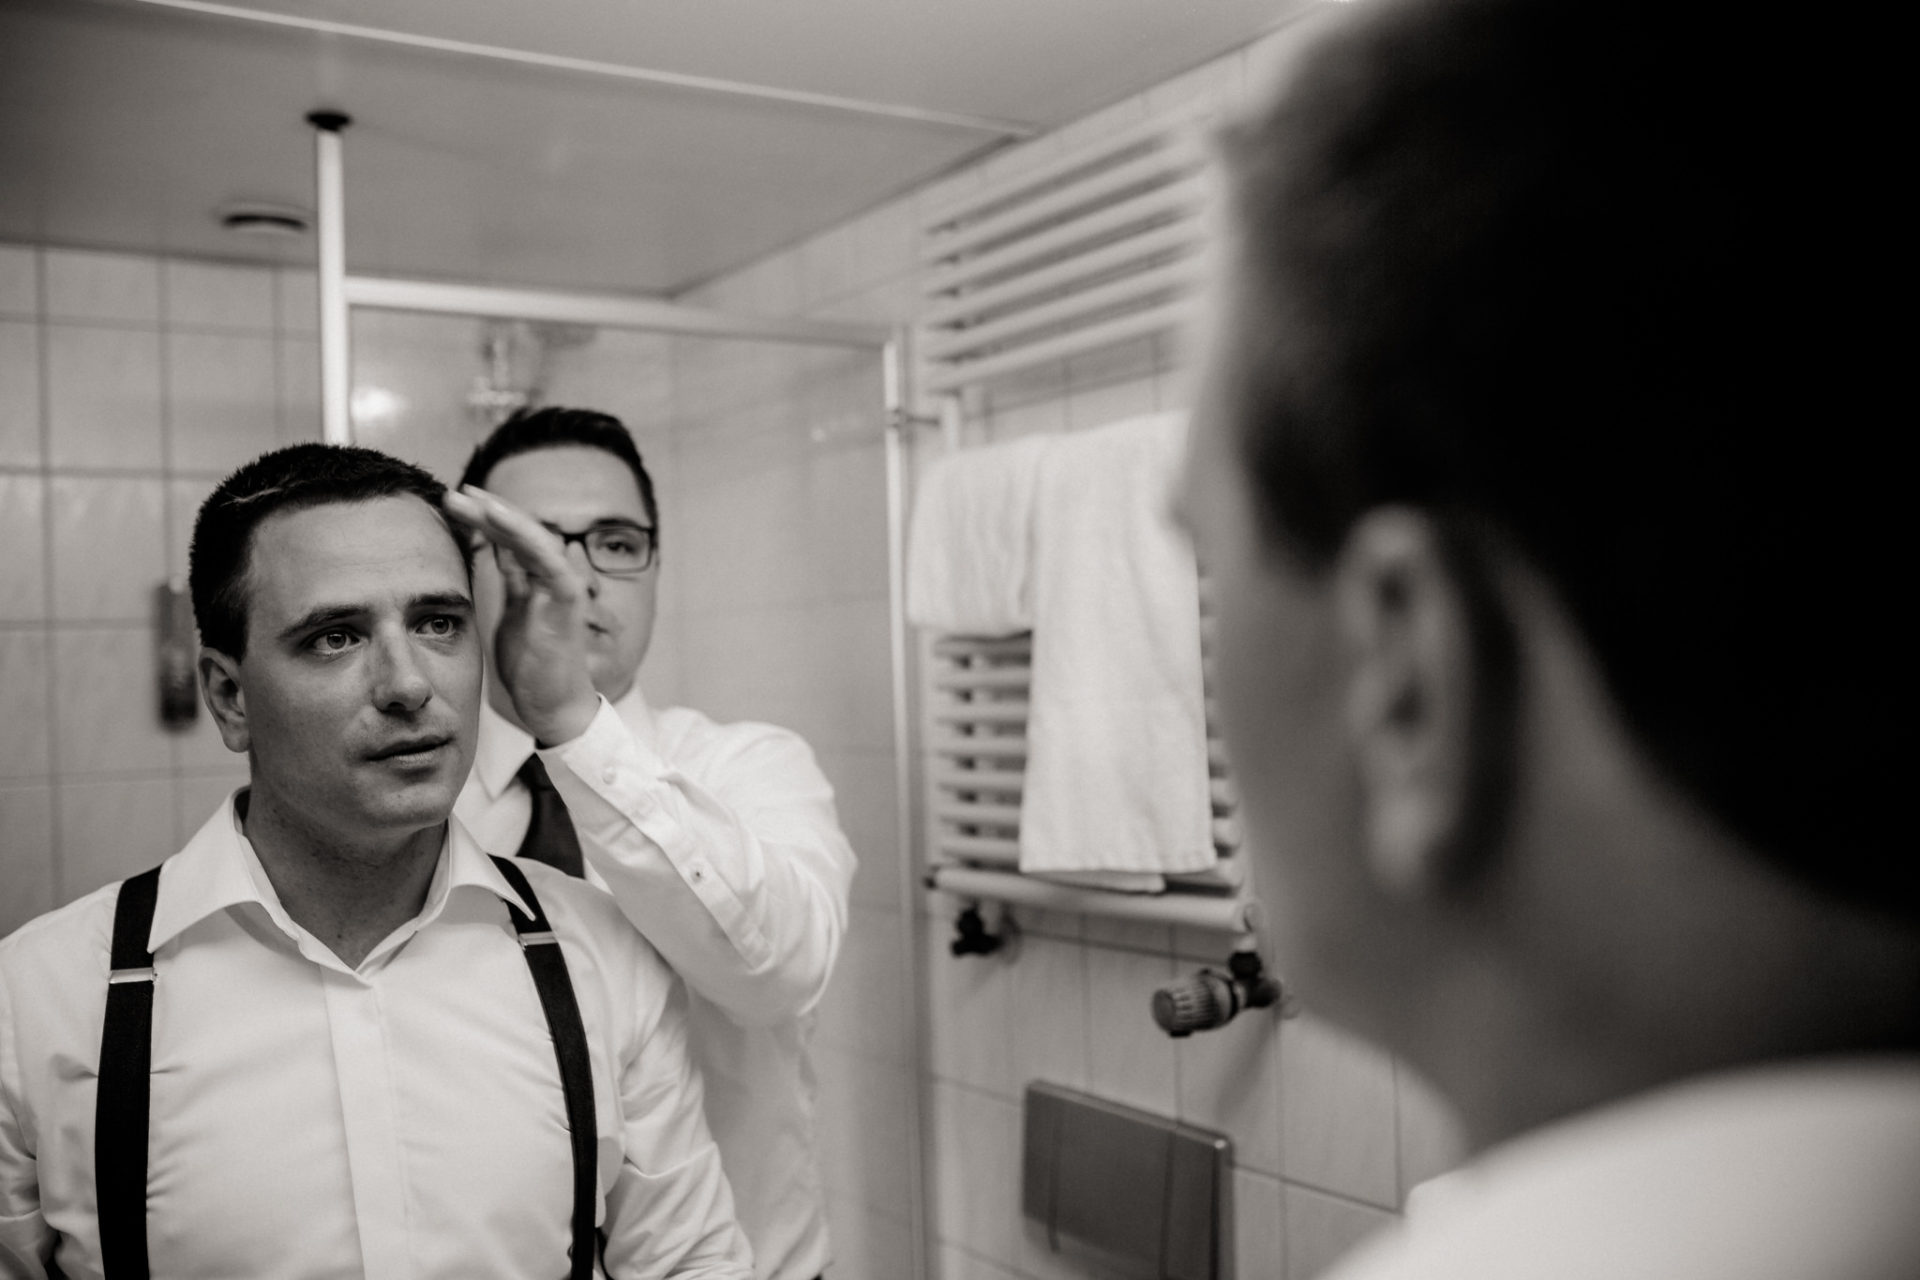 stuttgart wedding photographer-Castle Wedding Germany-Blackforest marriage-schloss heinsheim groom and best man getting ready